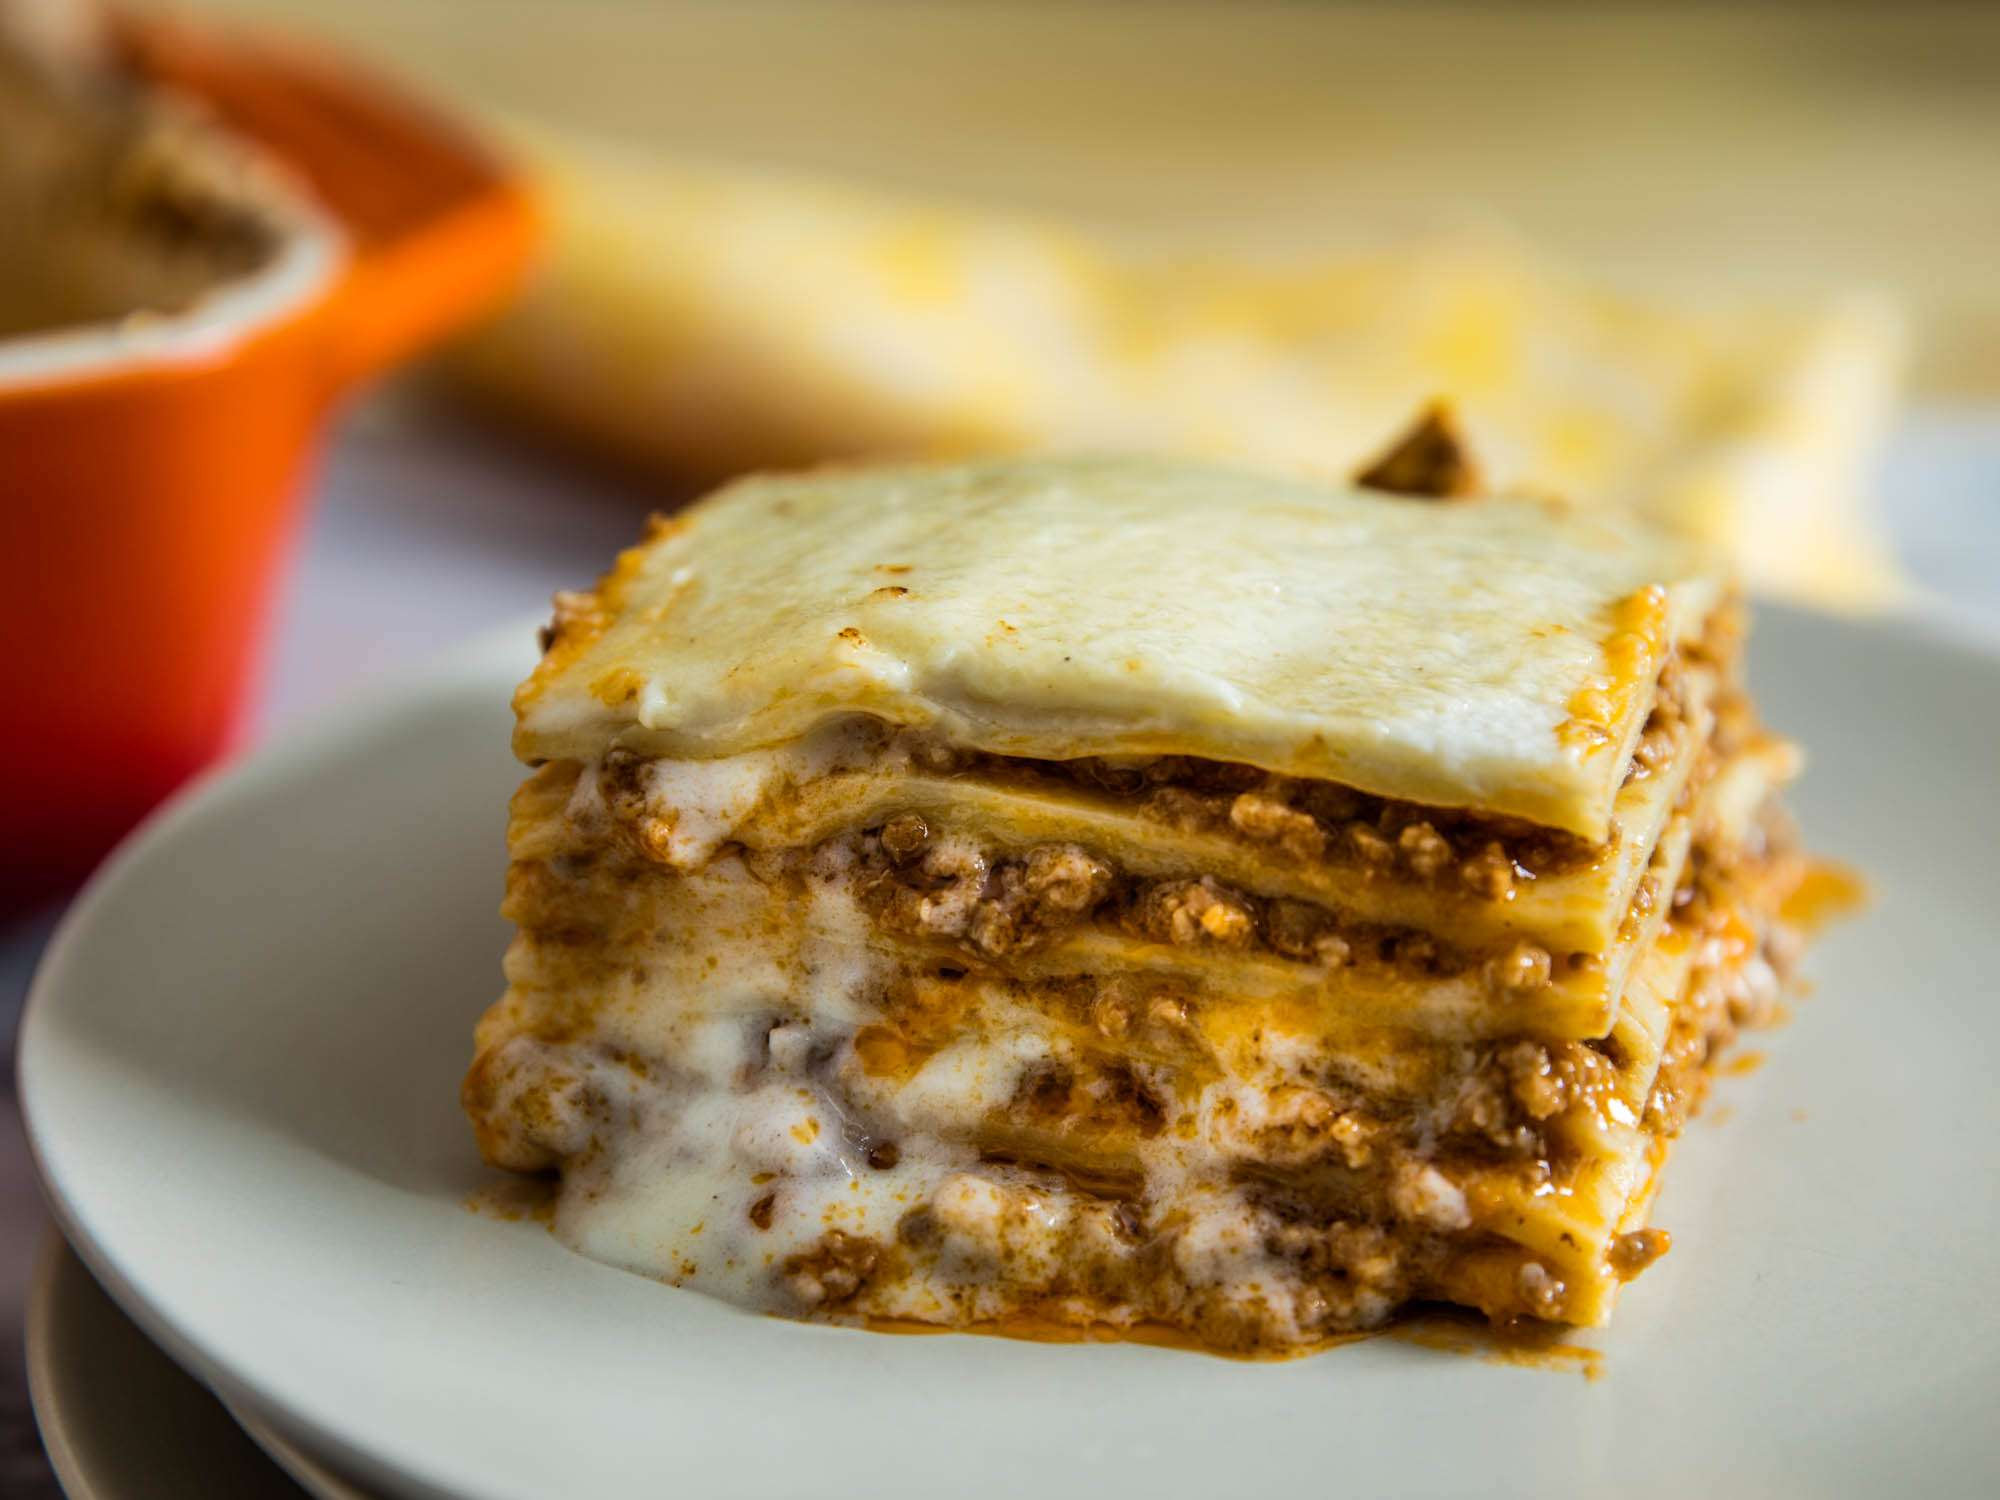 A serving of lasagna bolognese on a plate.